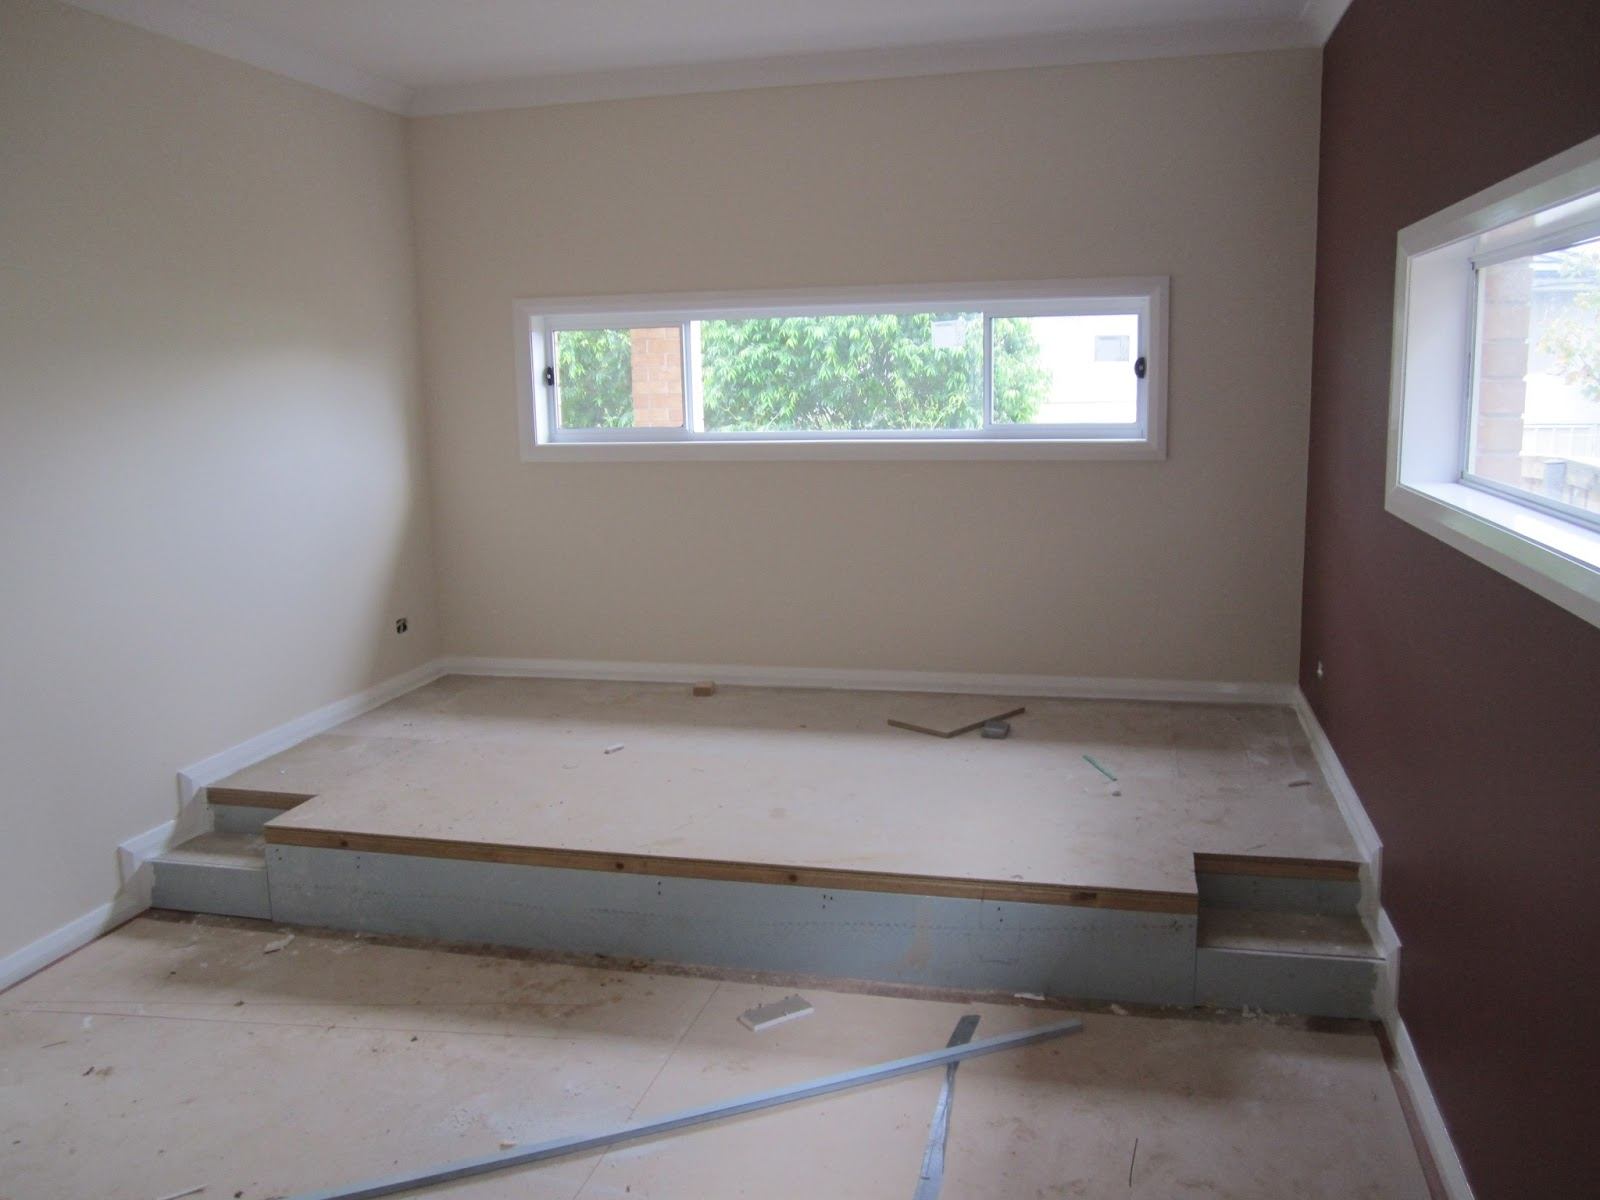 how to build a platform bed with casters